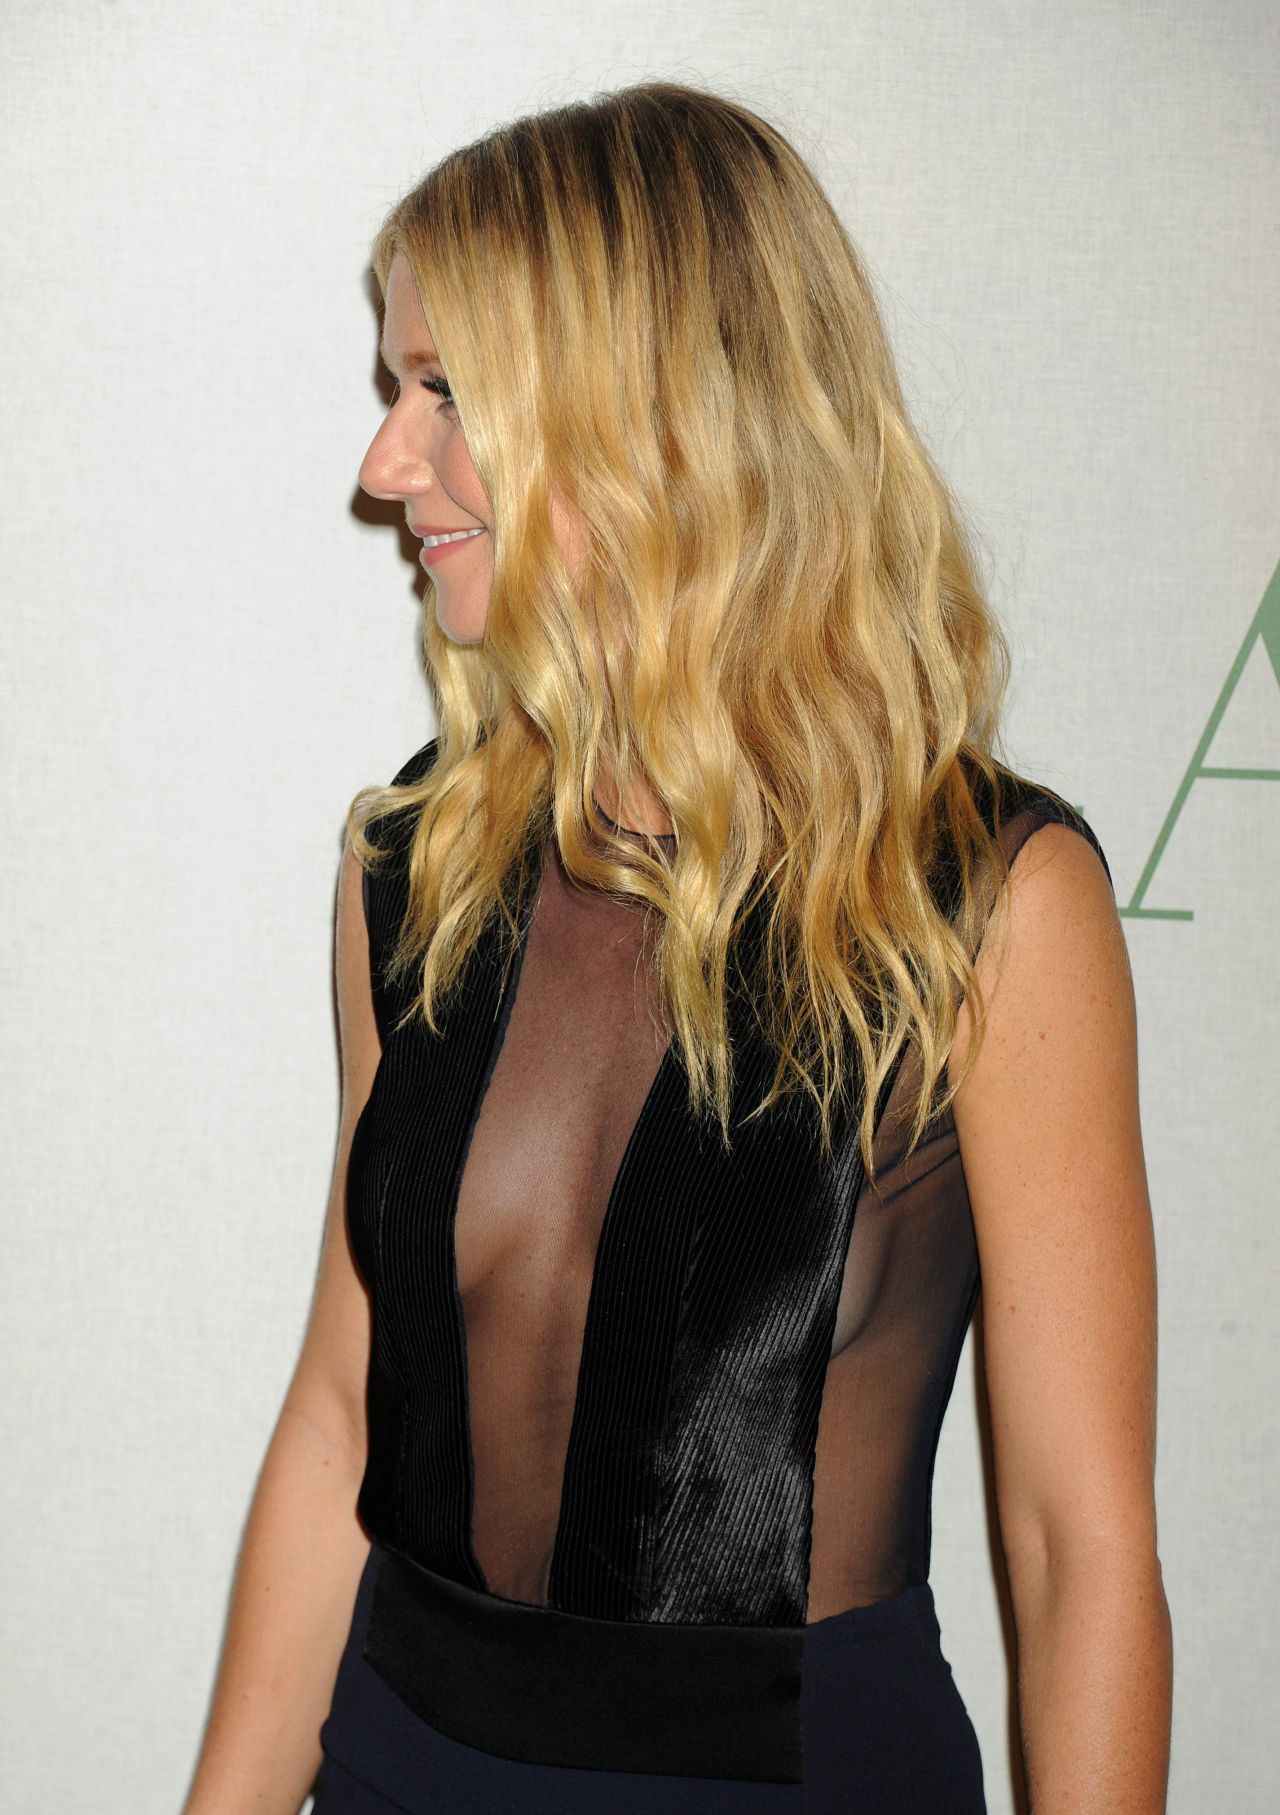 gwyneth-paltrow-la-mer-celebration-of-an-icon-global-event-in-los-angeles-october-2015_2